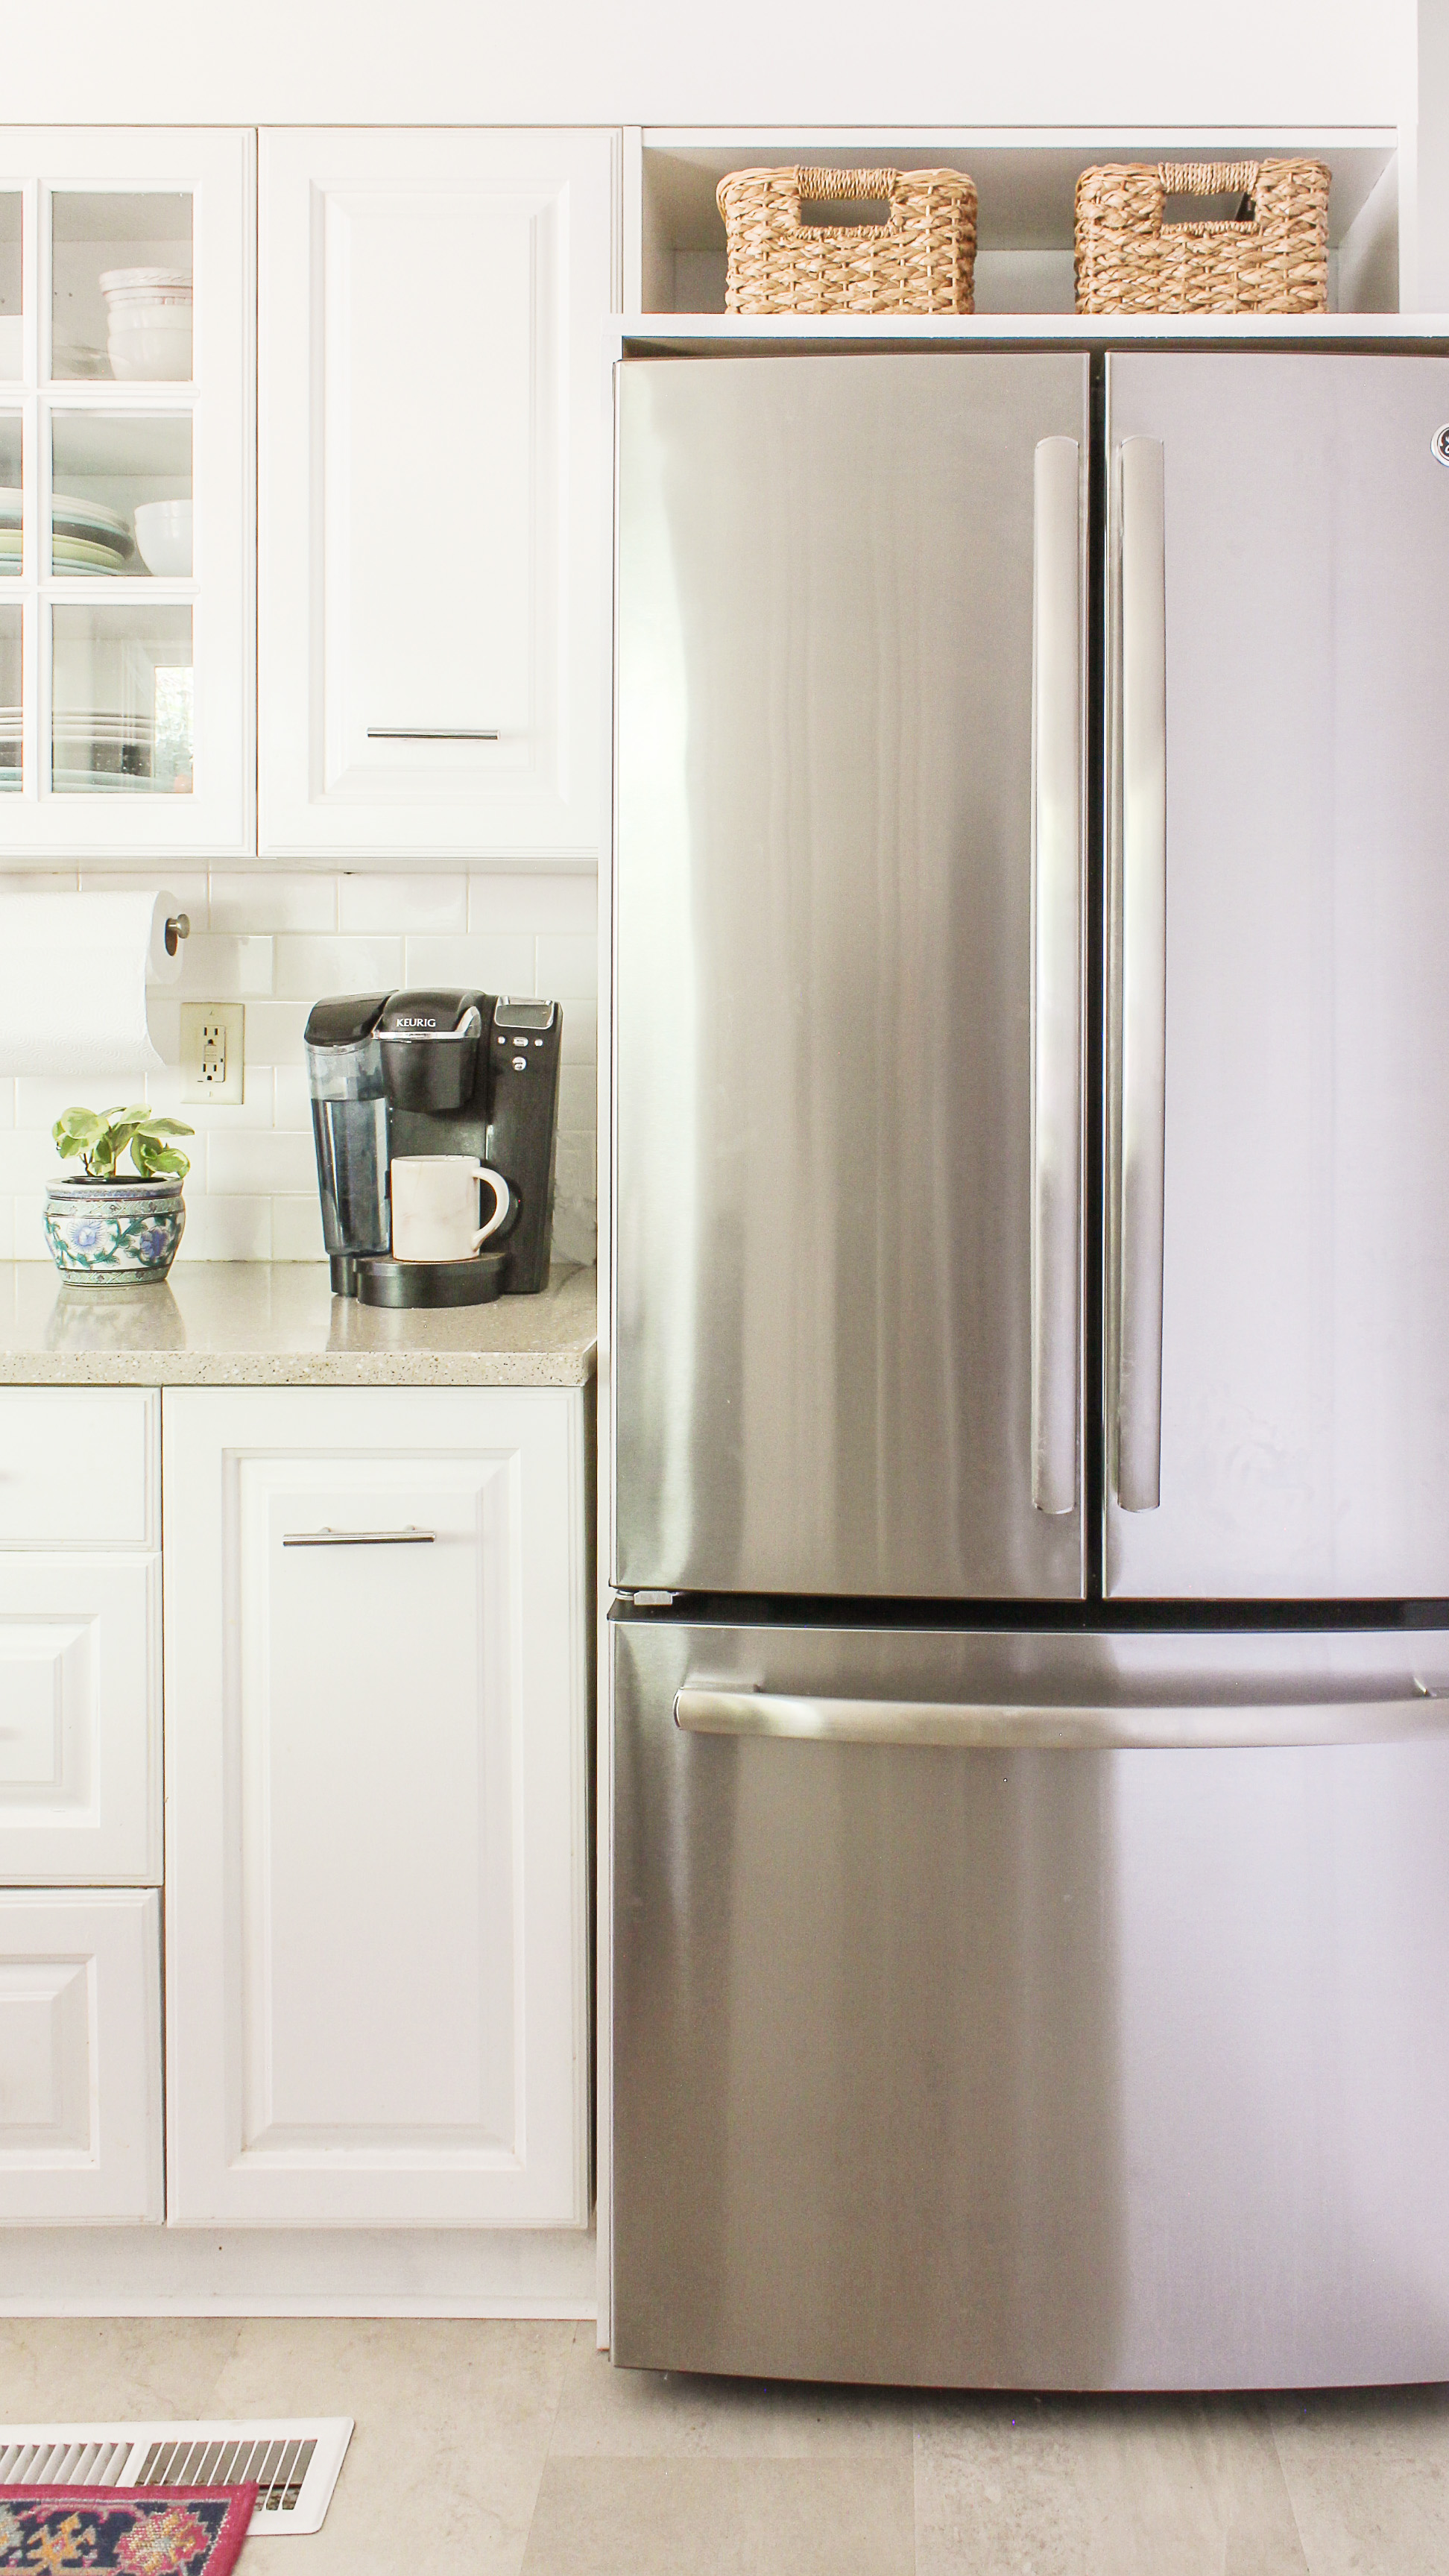 How to Frame a Refrigerator that is too Wide for Opening